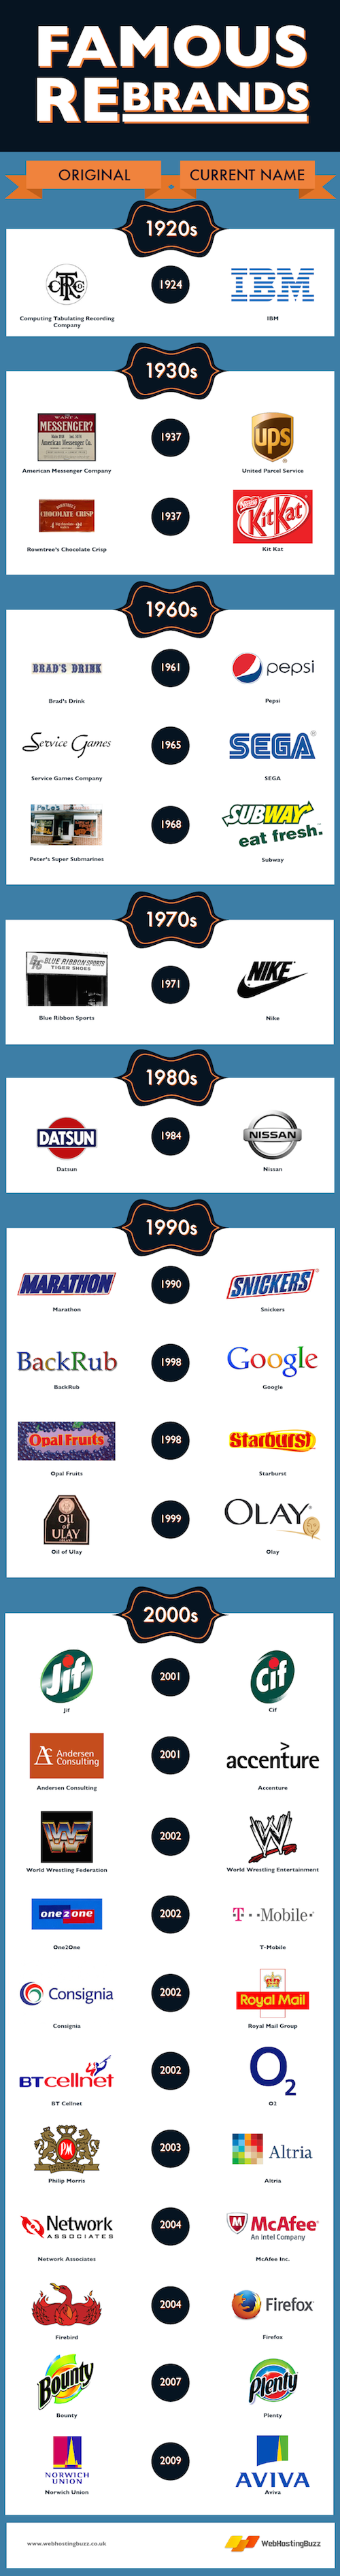 Pin sports logopng on pinterest - Famous Rebrands Branding Changes And Logos Of Now Famous Companies